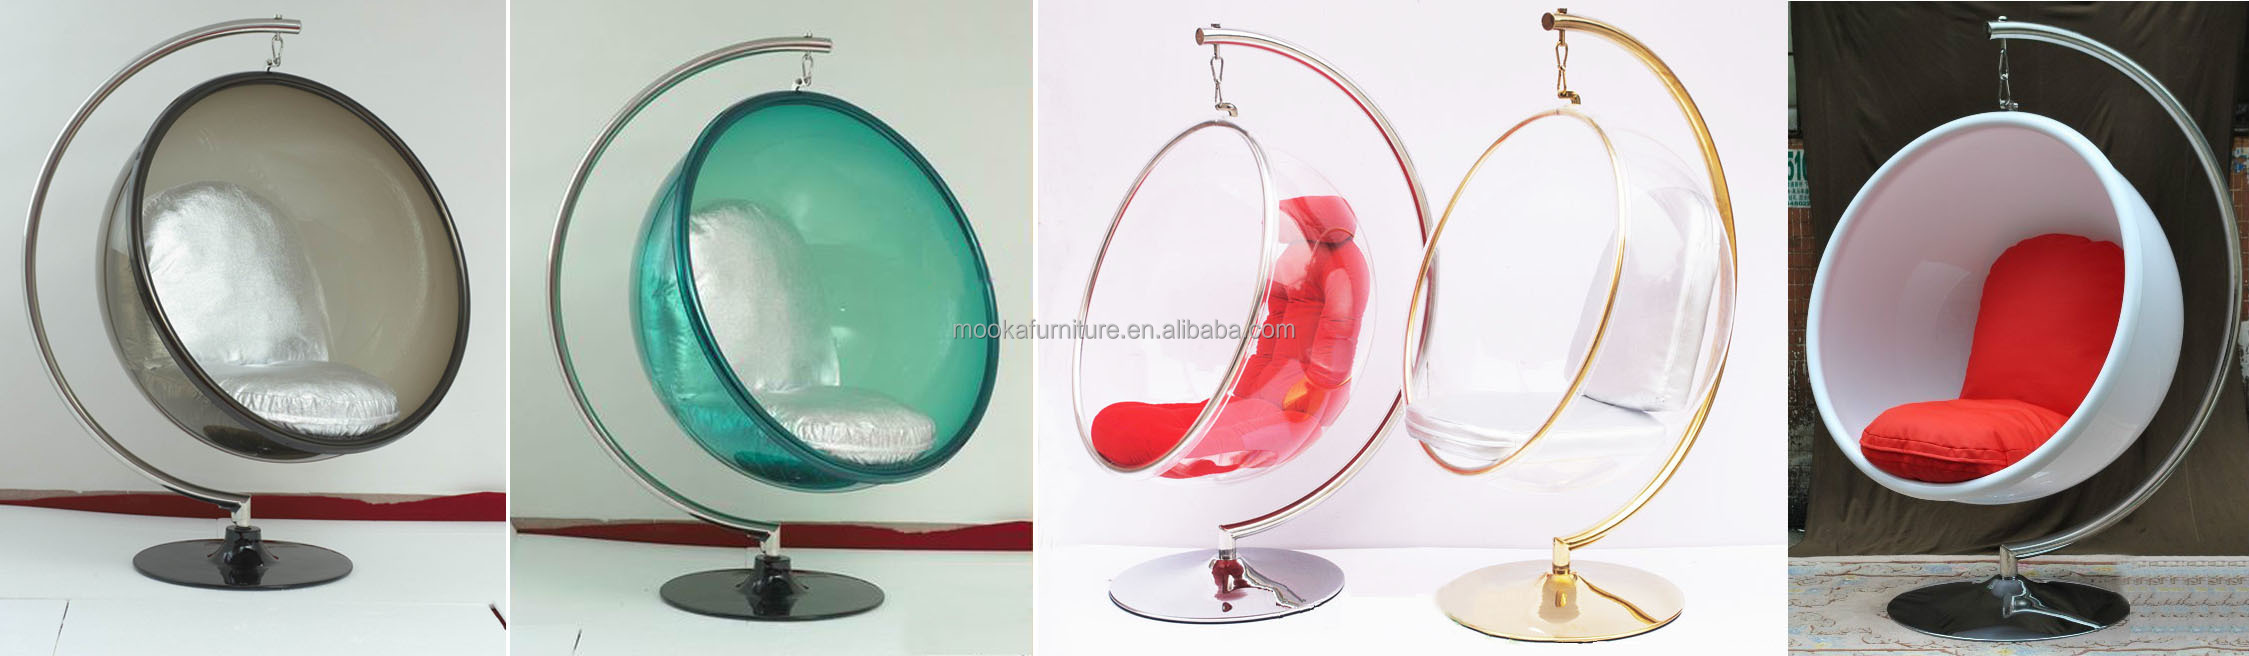 Bubble chair eero aarnio - Cheap Clear Hanging Bubble Chair For Sale Mkpb